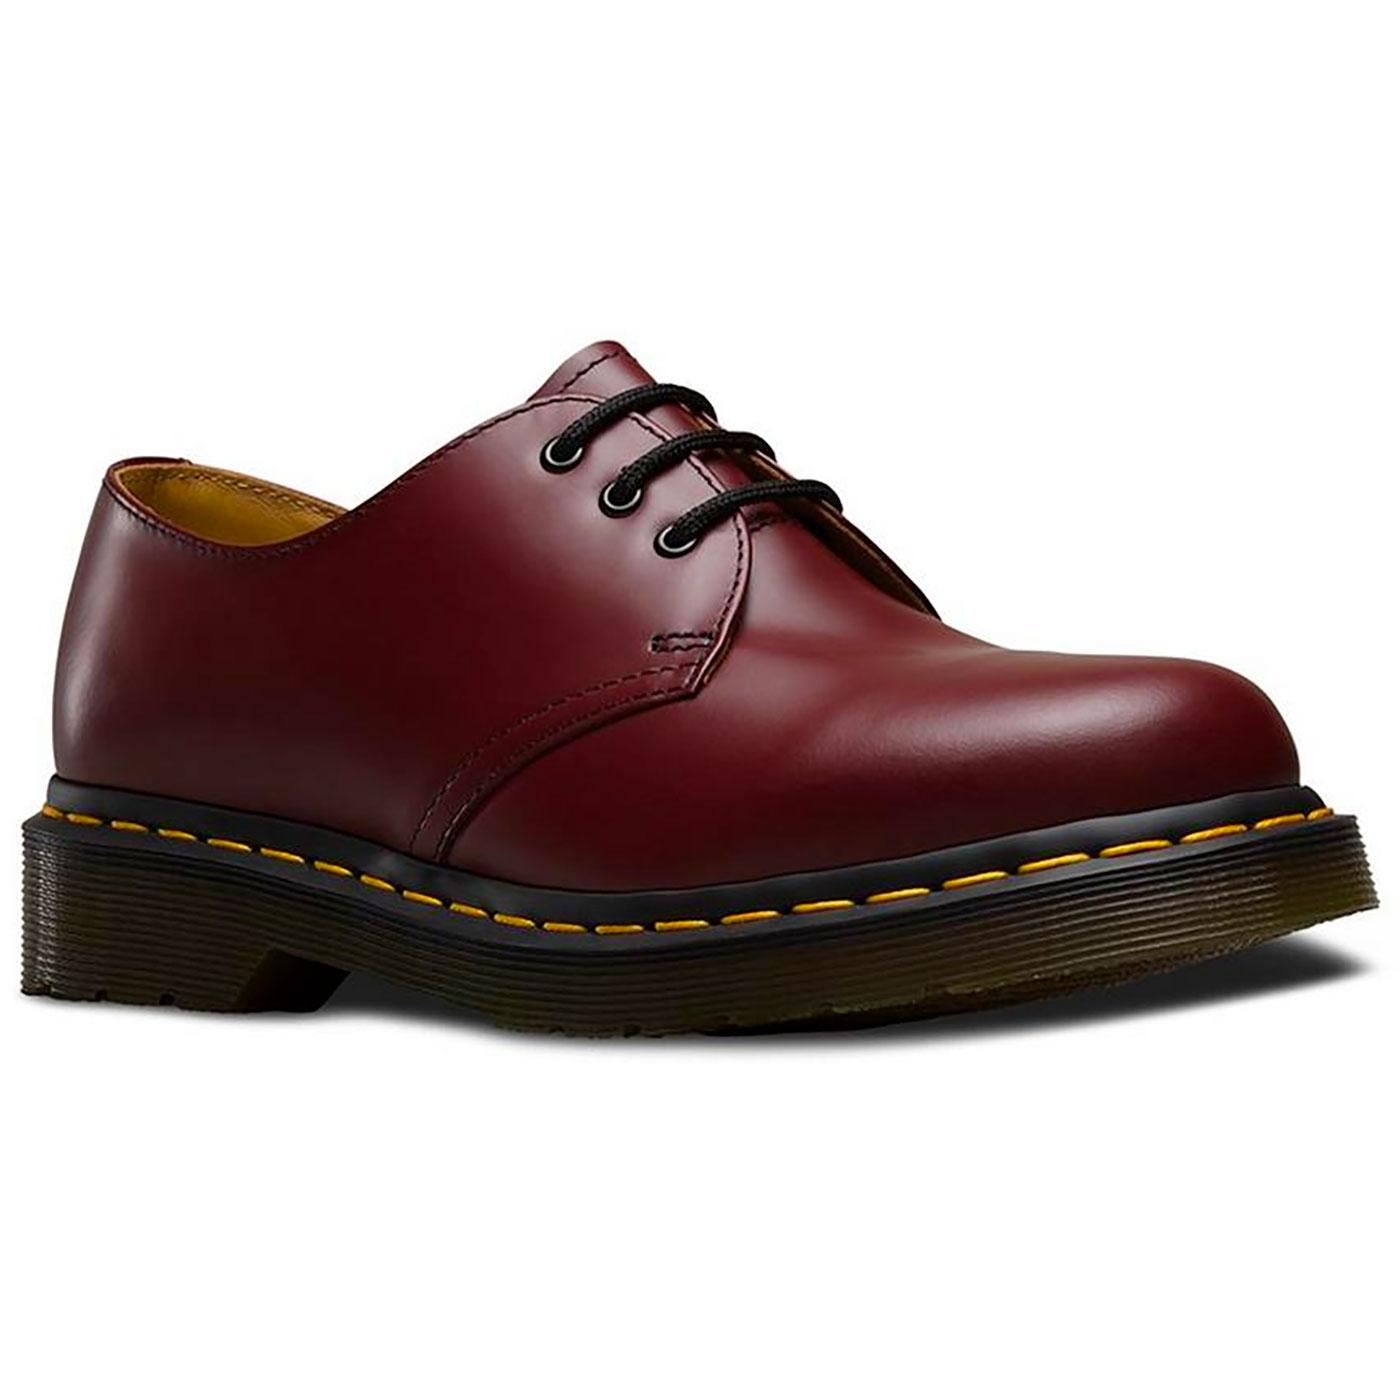 1461 DR MARTENS Men's Retro Mod 3 Eyelet Shoes CR